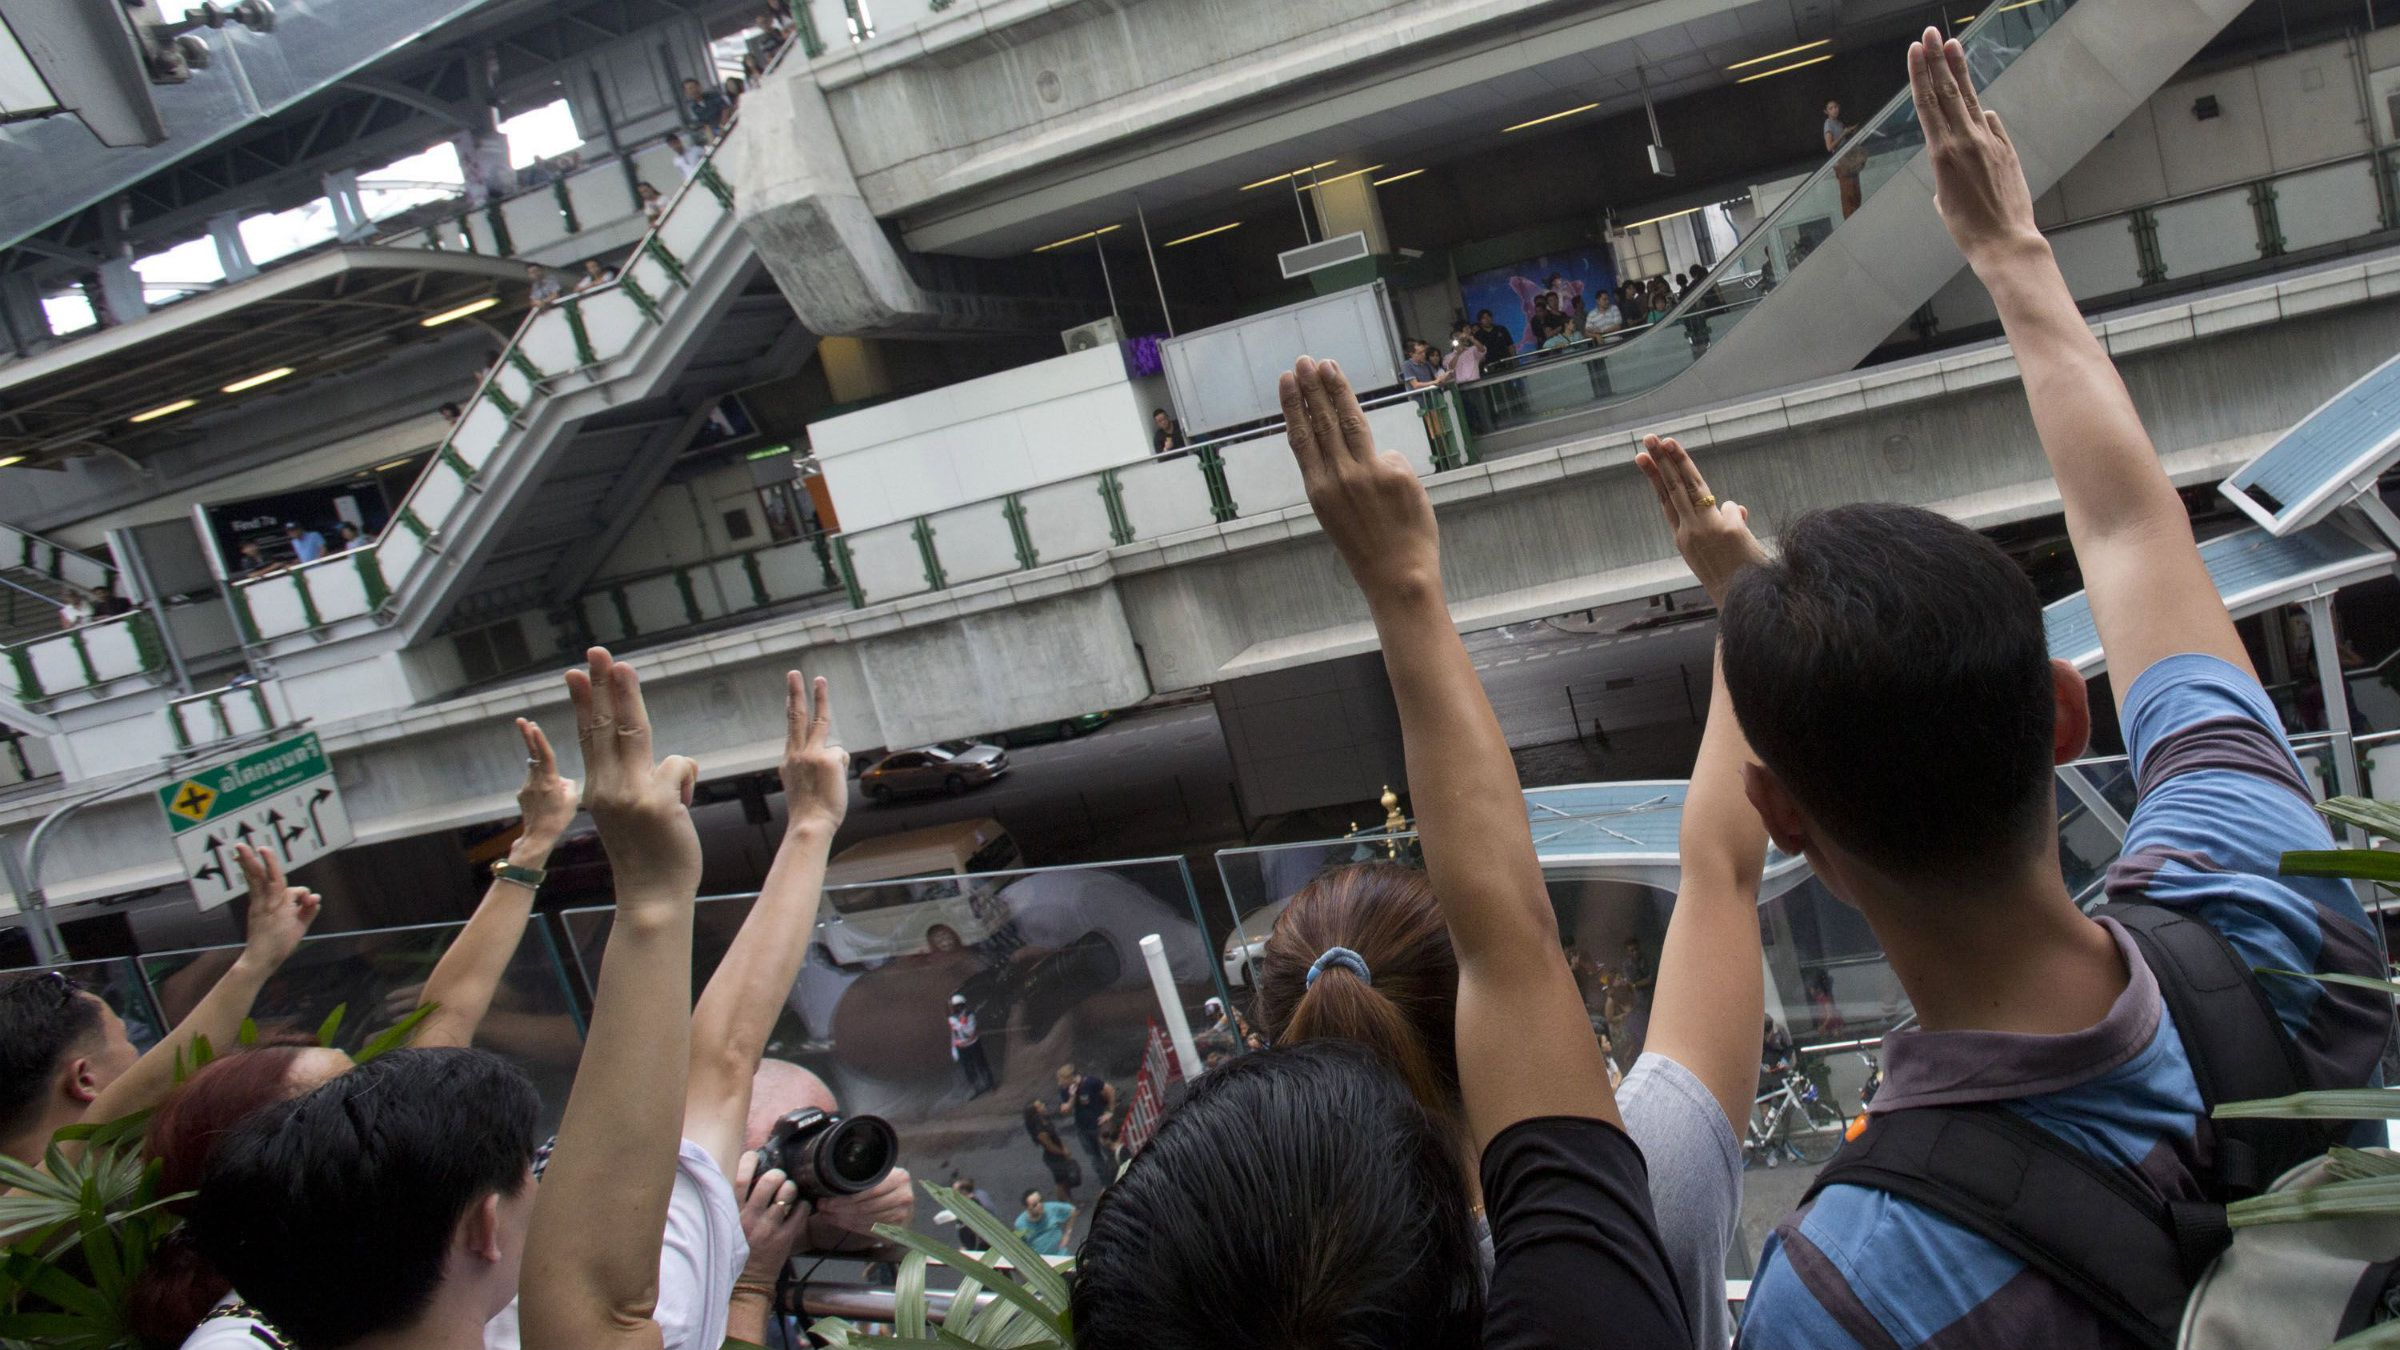 """Protesters raise three fingers, representing liberty, brotherhood and equality, during an anti-coup demonstration in Bangkok, Thailand Sunday, June 1, 2014. Hundreds of demonstrators shouting """"Freedom!"""" and """"Democracy!"""" gathered Sunday near a major shopping mall in downtown Bangkok to denounce the country's May 22 coup despite a lockdown by soldiers of some of the city's major intersections. (AP Photo/Sakchai Lalit)"""